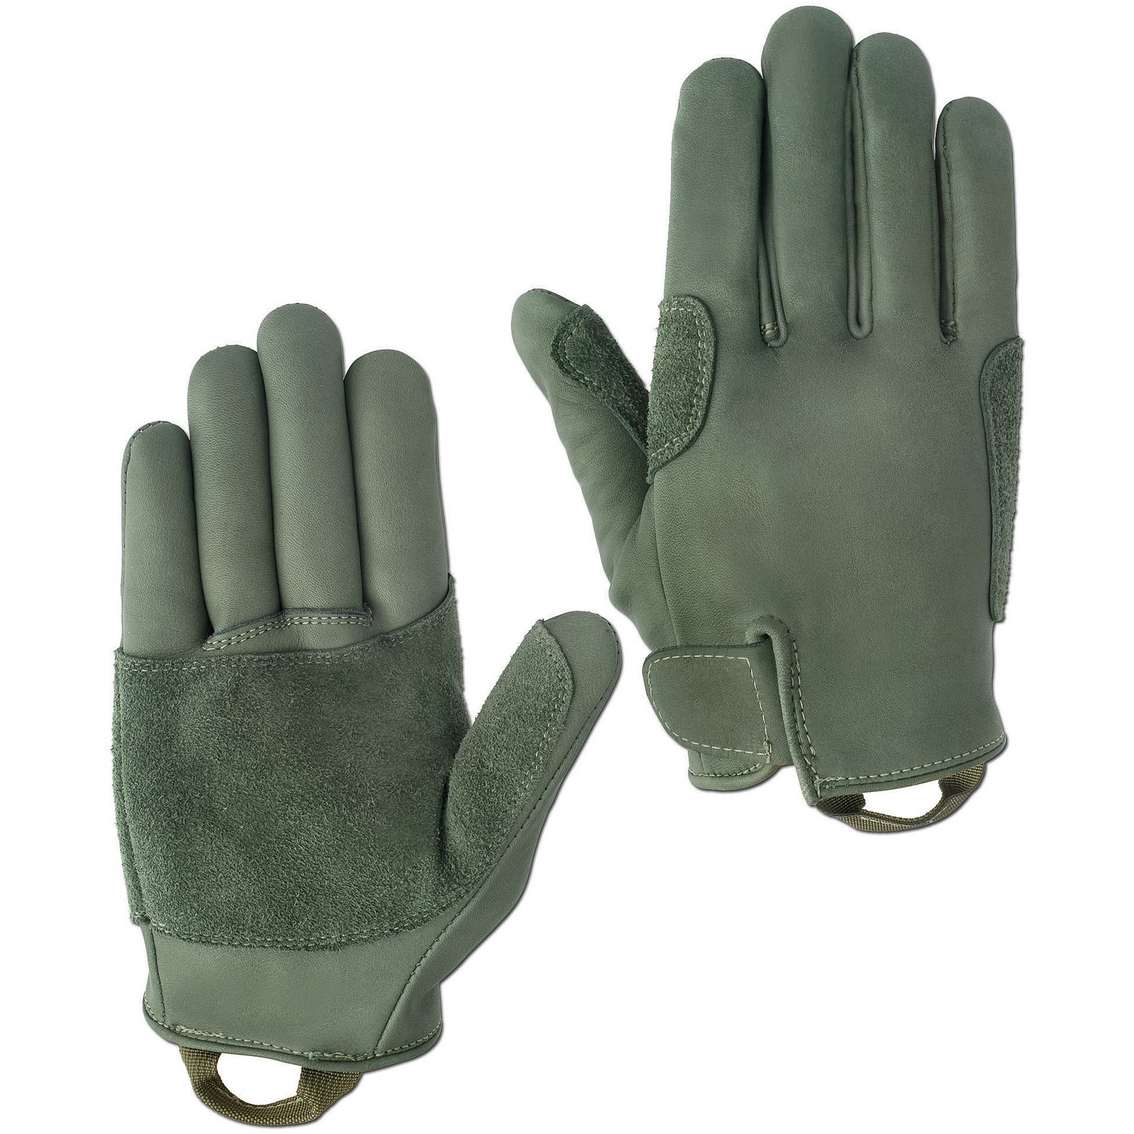 Ansell Activarmr Flexor Light Duty Utility Work Gloves  ca6674895b